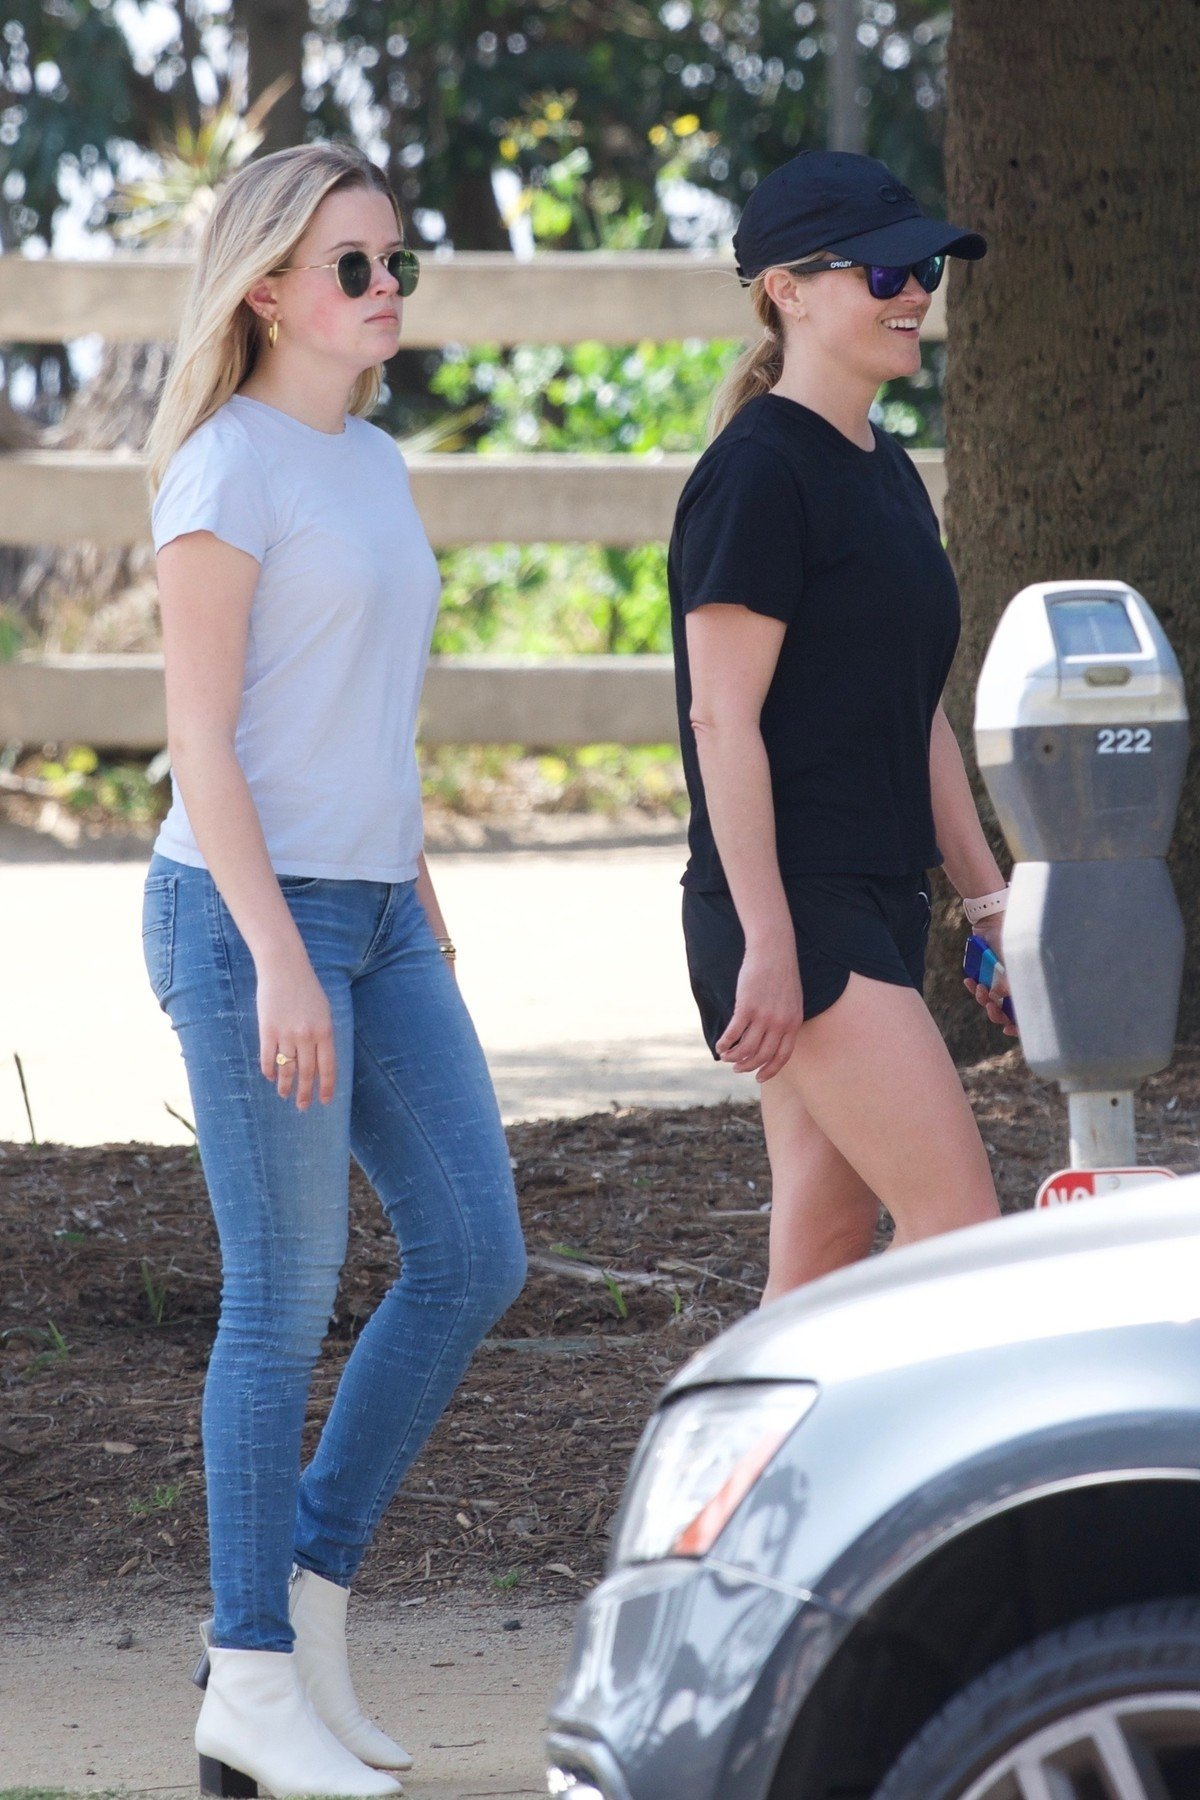 Los Angeles, CA  - *EXCLUSIVE*  - Reese Witherspoon and her kids at the LA marathon to cheer husband and daddy Jim Toth who is running today. The actress and supermommy is happy to spend time with each of her children on a sunny day like this.  Pictured: Reese Witherspoon, Ava Phillippe  BACKGRID USA 24 MARCH 2019, Image: 421958709, License: Rights-managed, Restrictions: , Model Release: no, Credit line: Profimedia, Backgrid USA